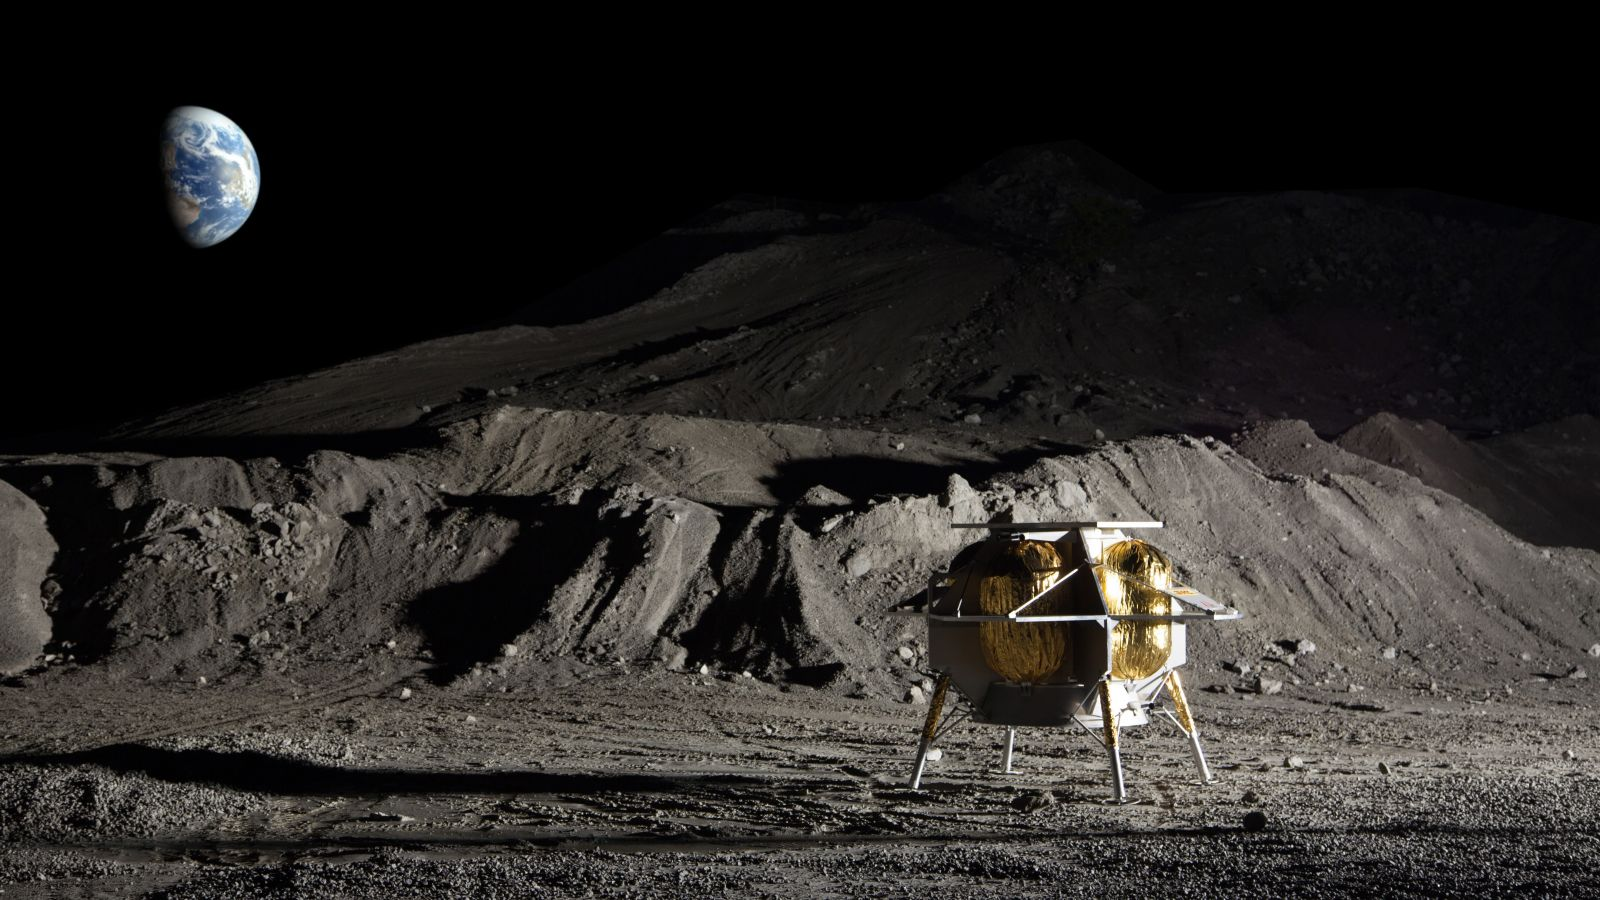 A Peregrine lunar lander flight mock-up. Image Credit: Astrobotic Technology